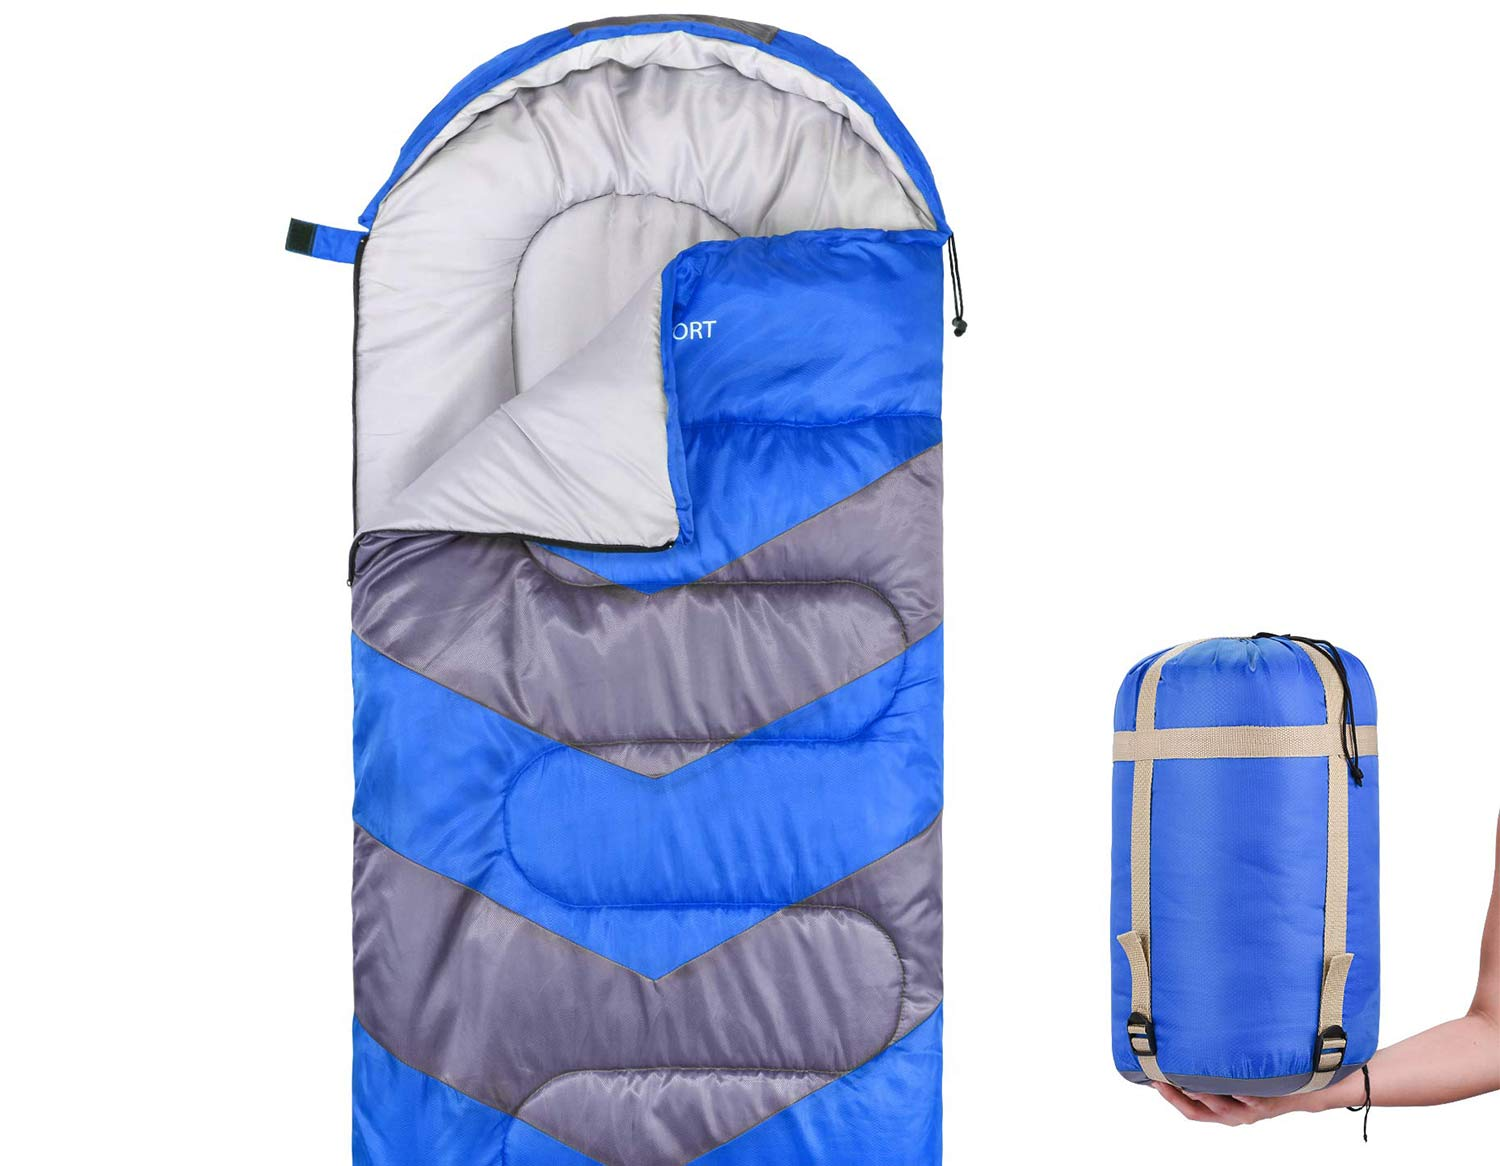 3 Keys to Finding a Sleeping Bag for Your Next Camping Trip